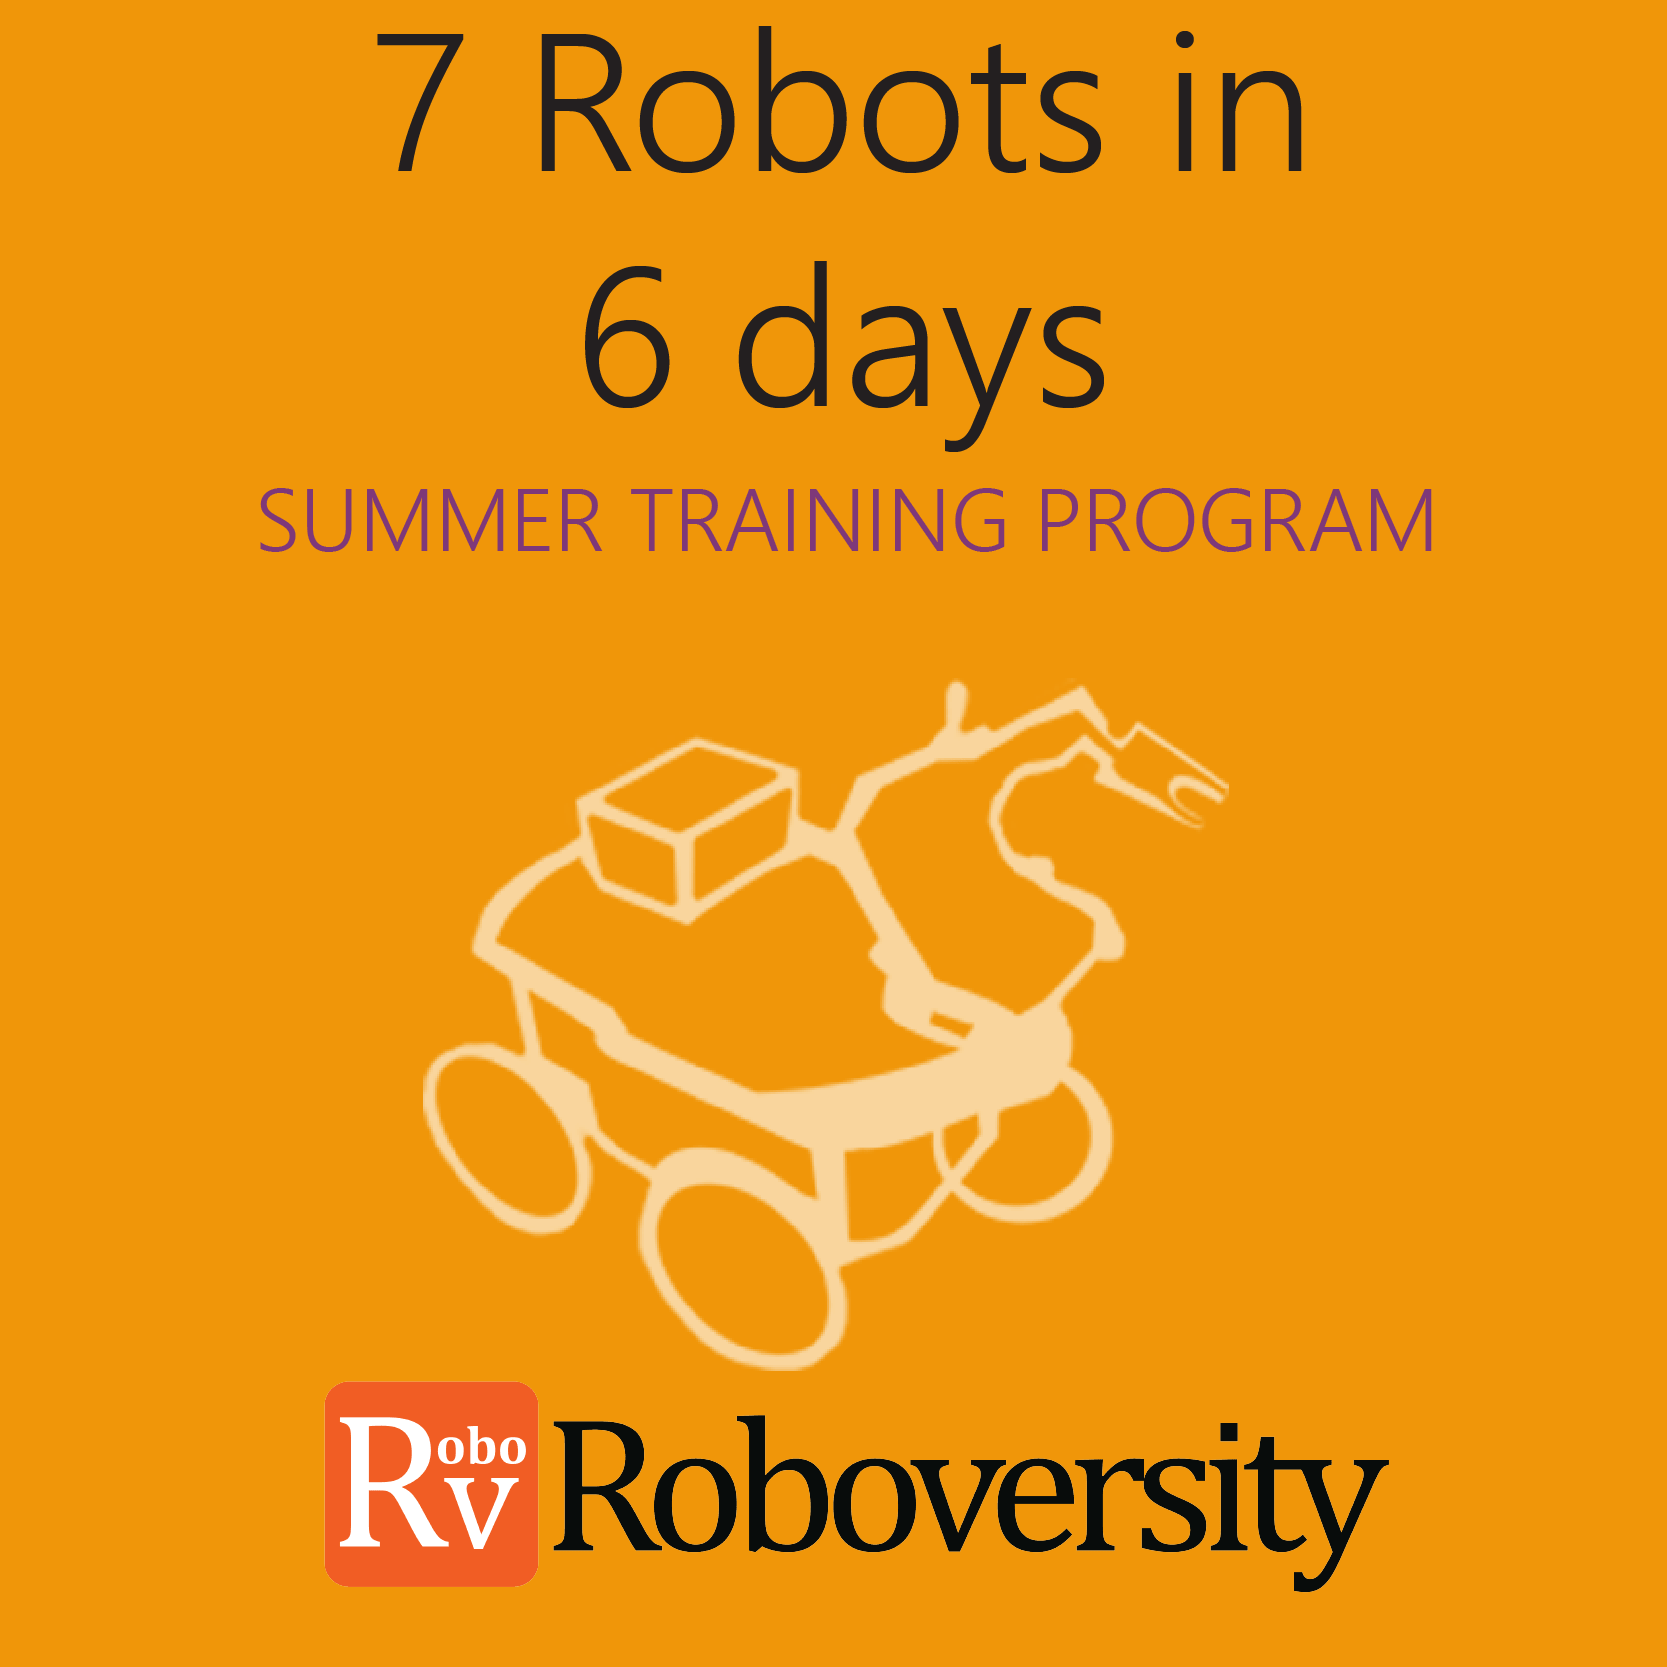 Summer Training Program in Robotics - 7 Robots in 6 Days  at Skyfi Labs Center,Jejurkar Classes, Dadar Workshop